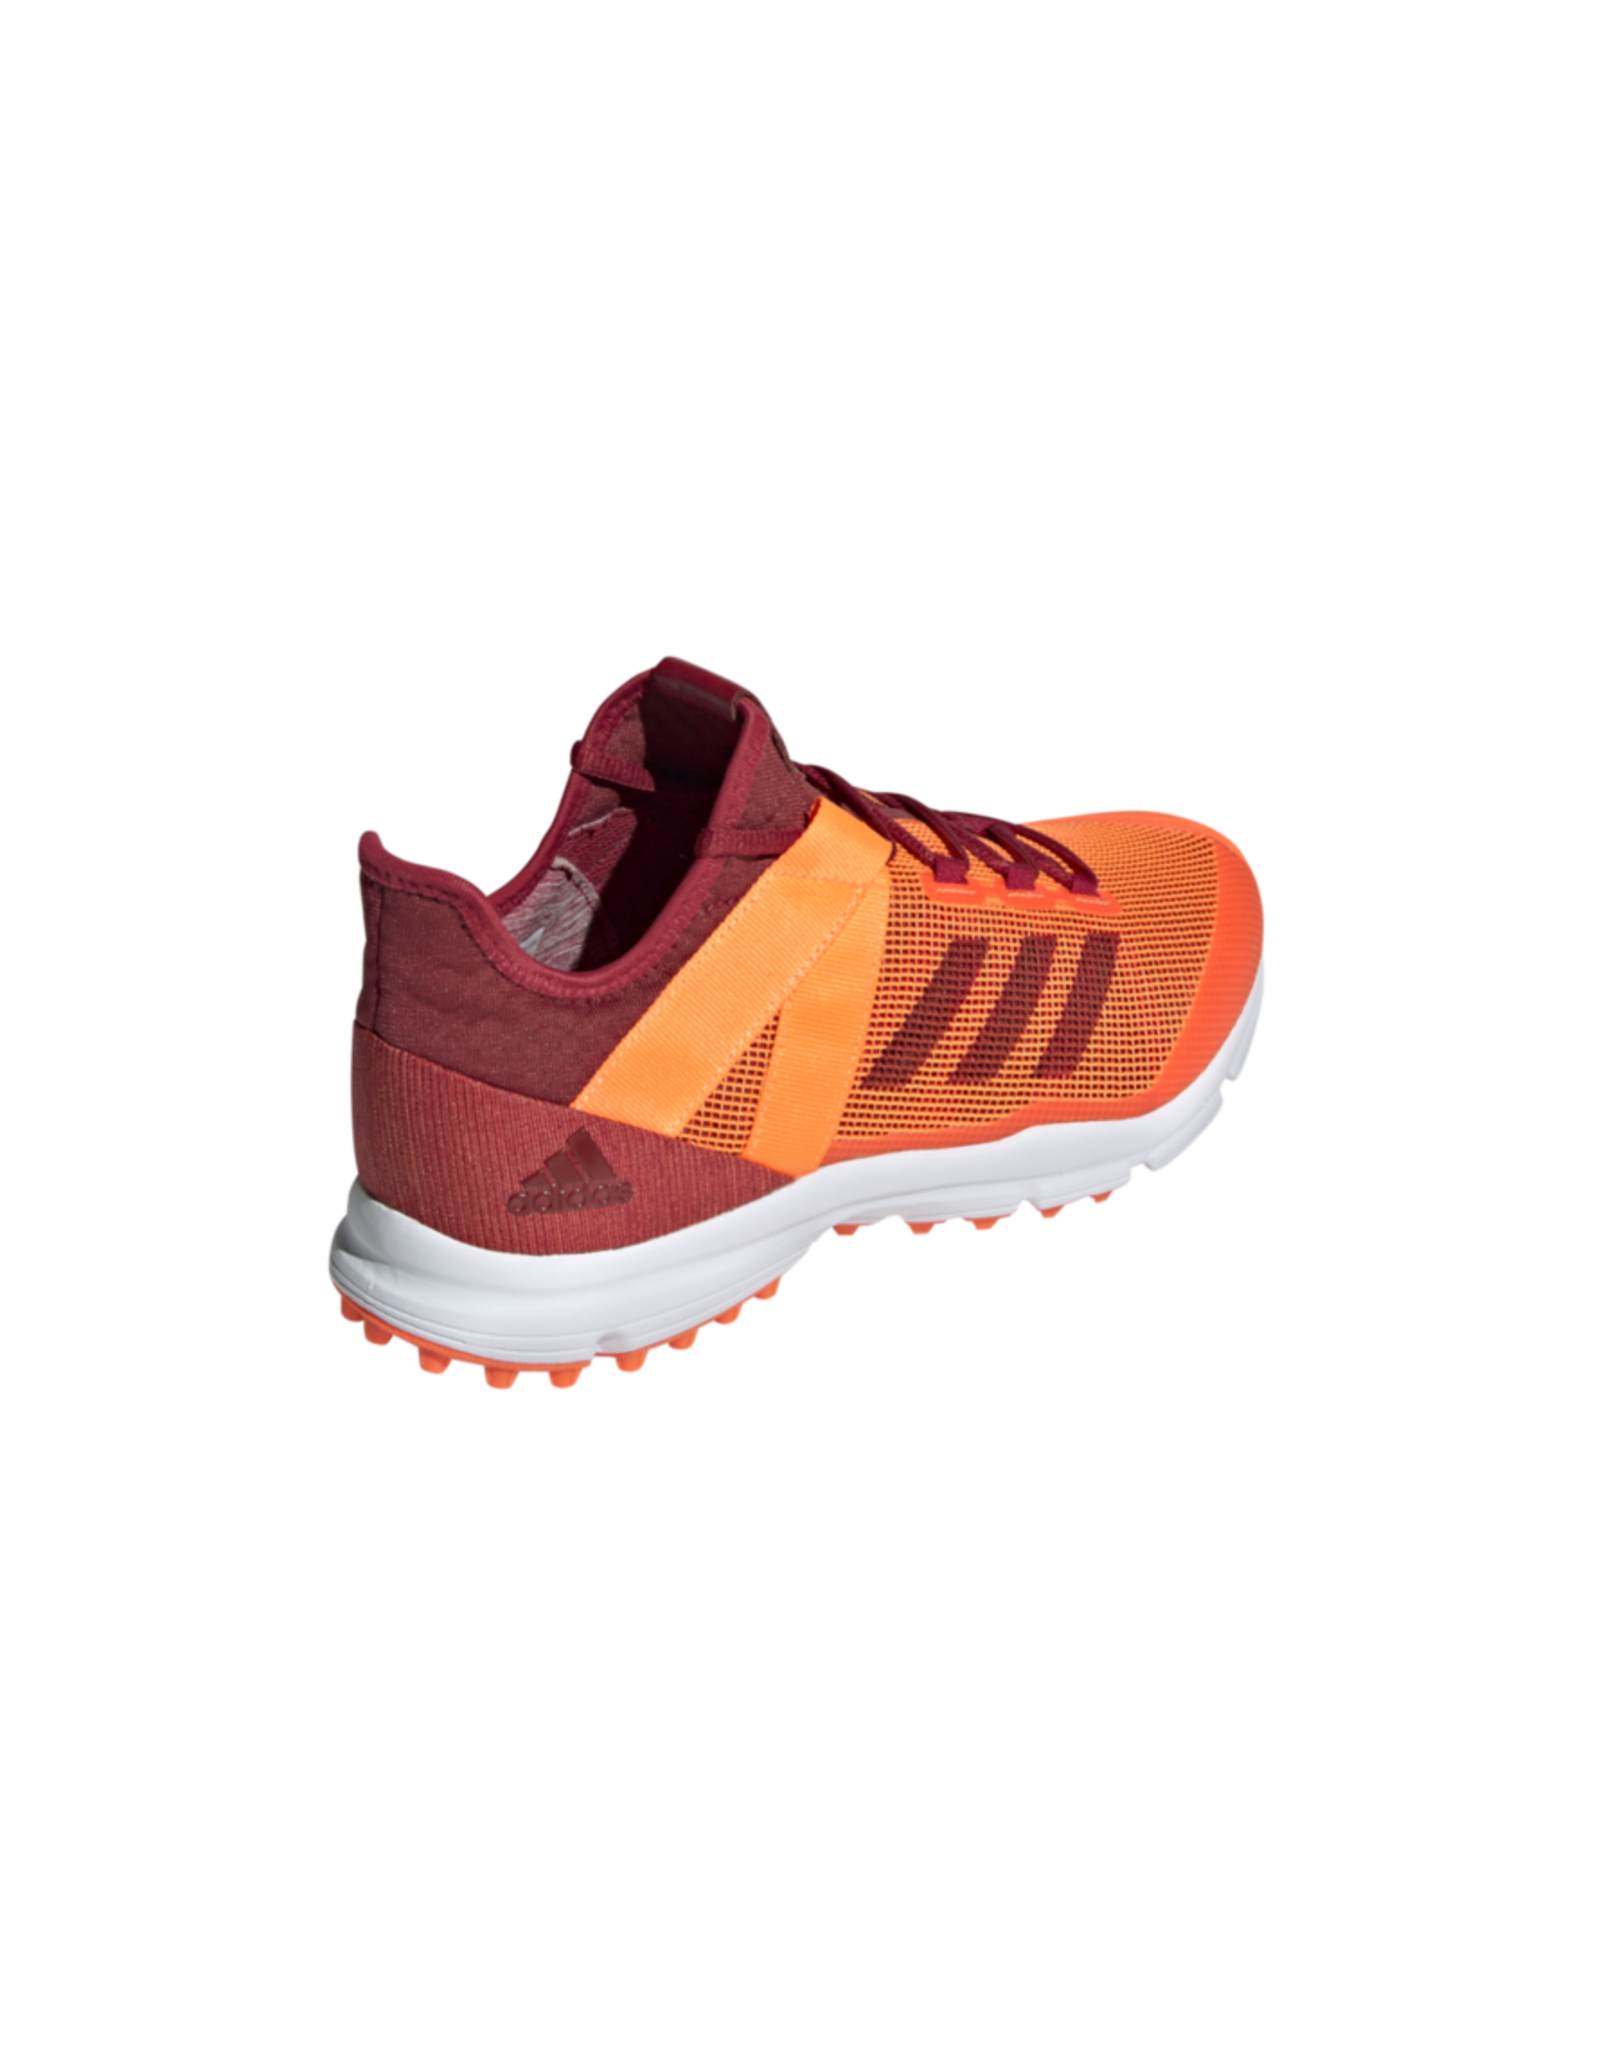 ADIDAS ADIDAS ZONE DOX 1.9 S ORANGE/MAROON 19-20